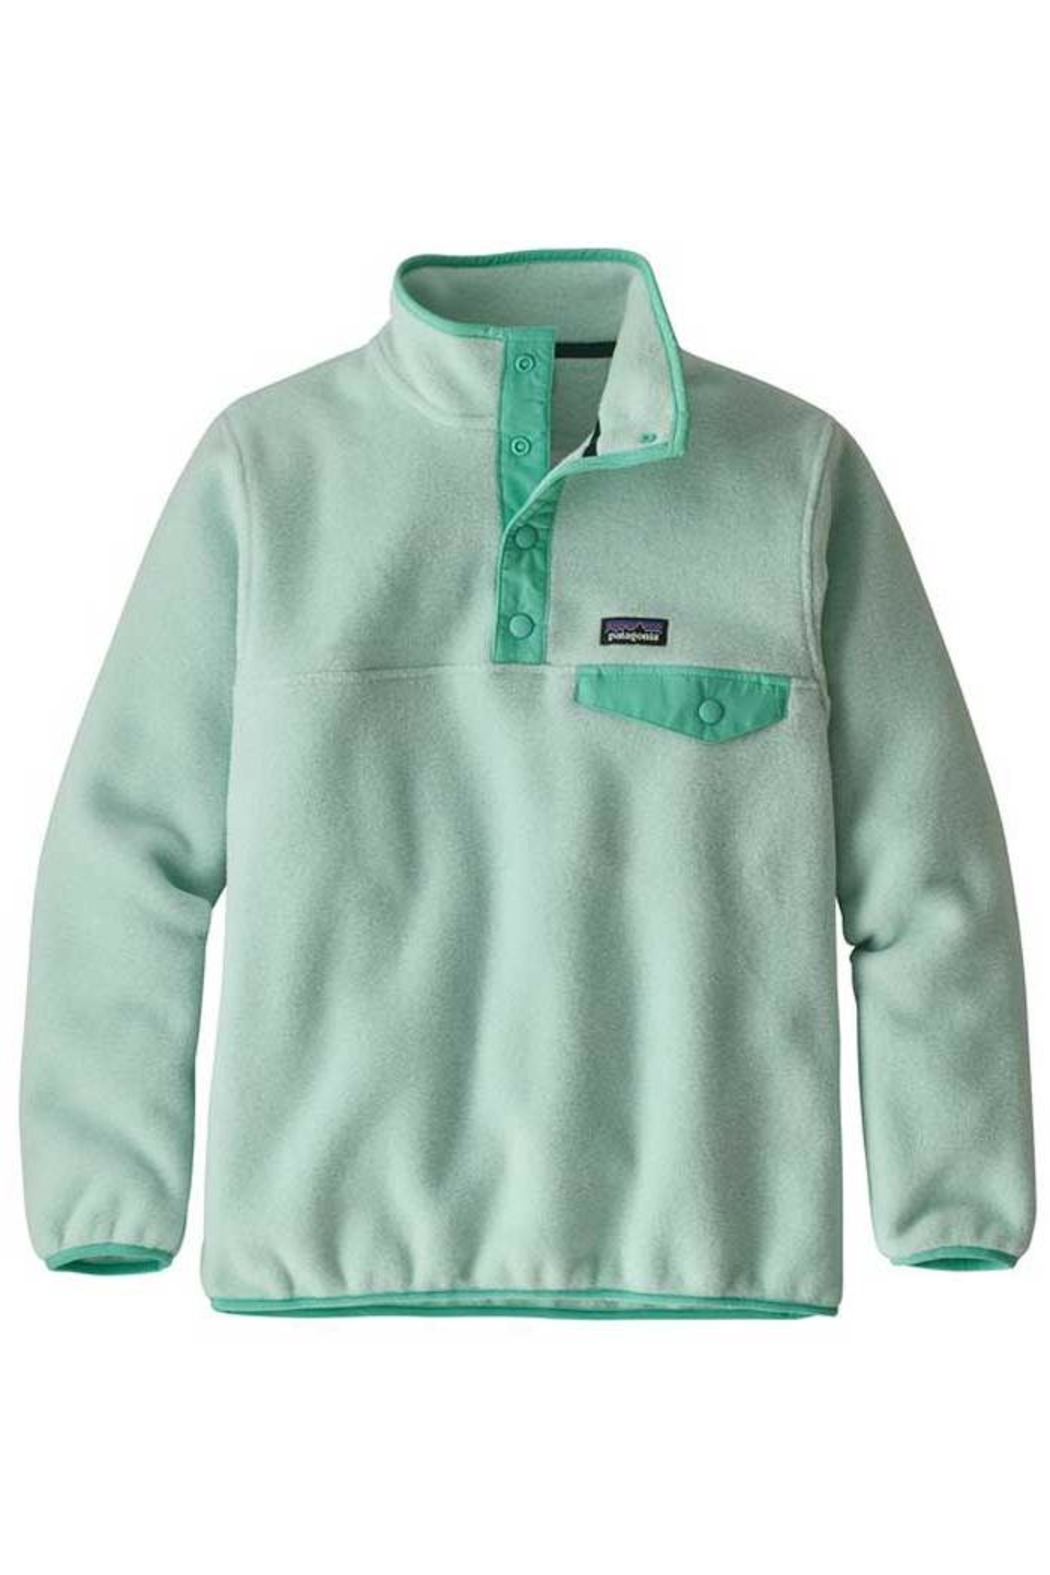 Patagonia Girl's Synchilla Pullover - Main Image